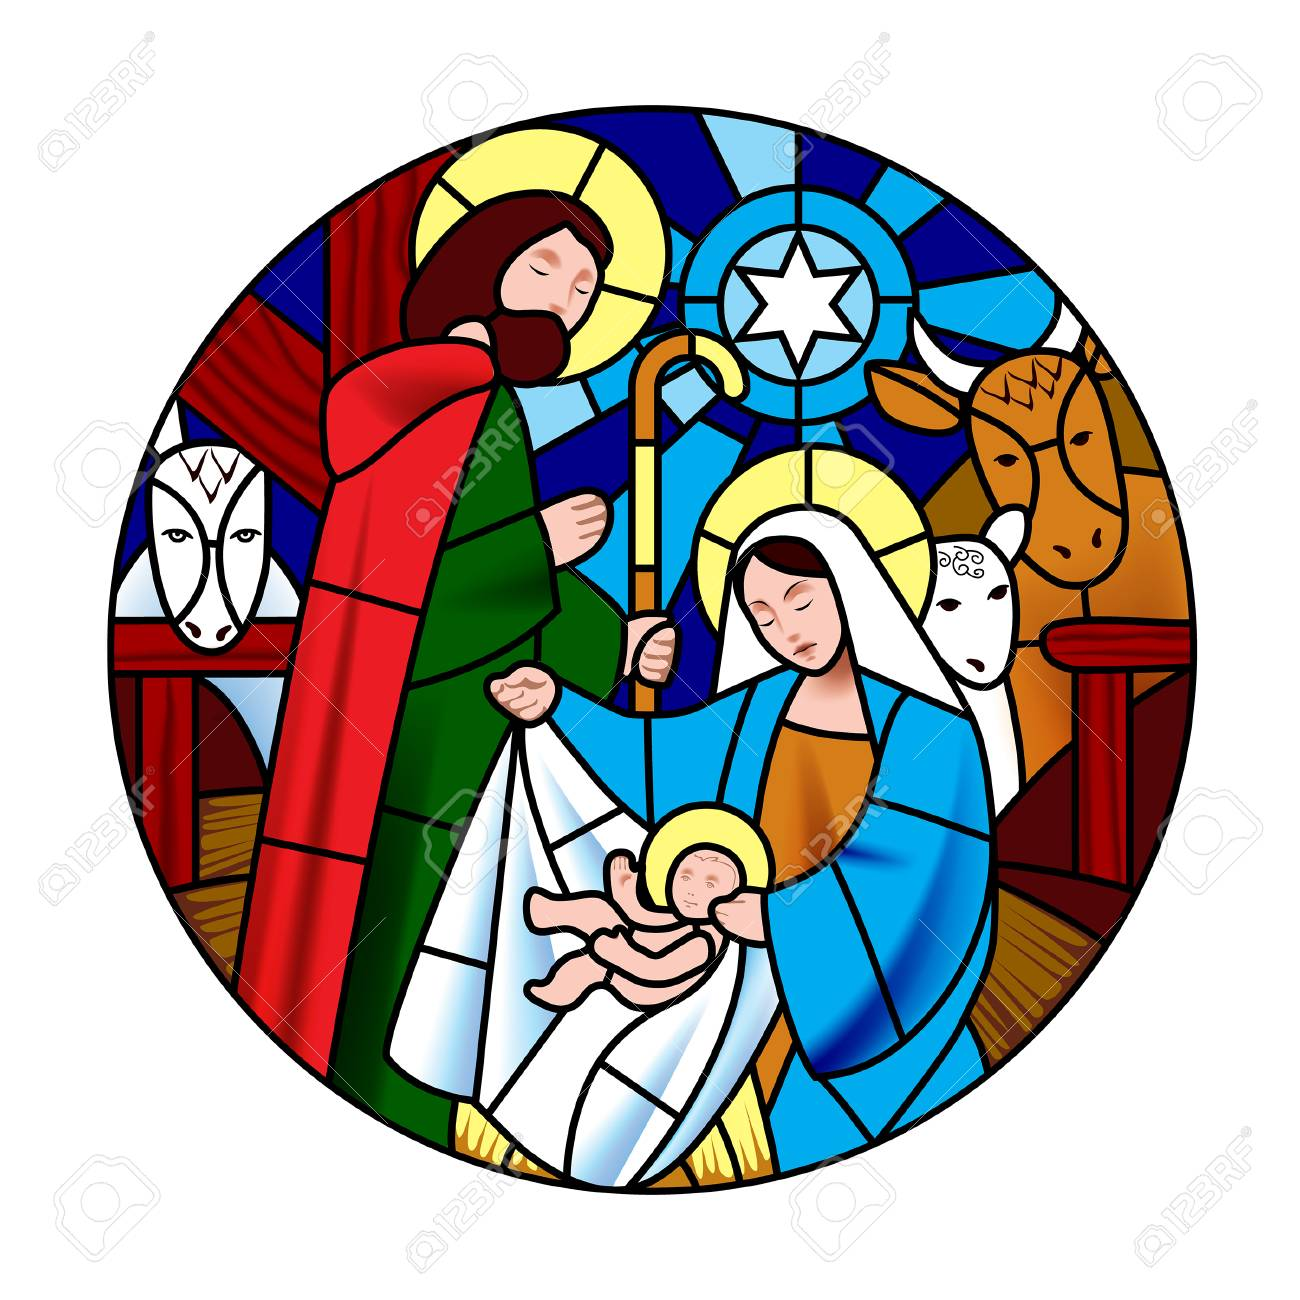 Circle shape with the birth of Jesus Christ scene in stained glass style. Christmas symbol and icon. Vector illustration - 104237124